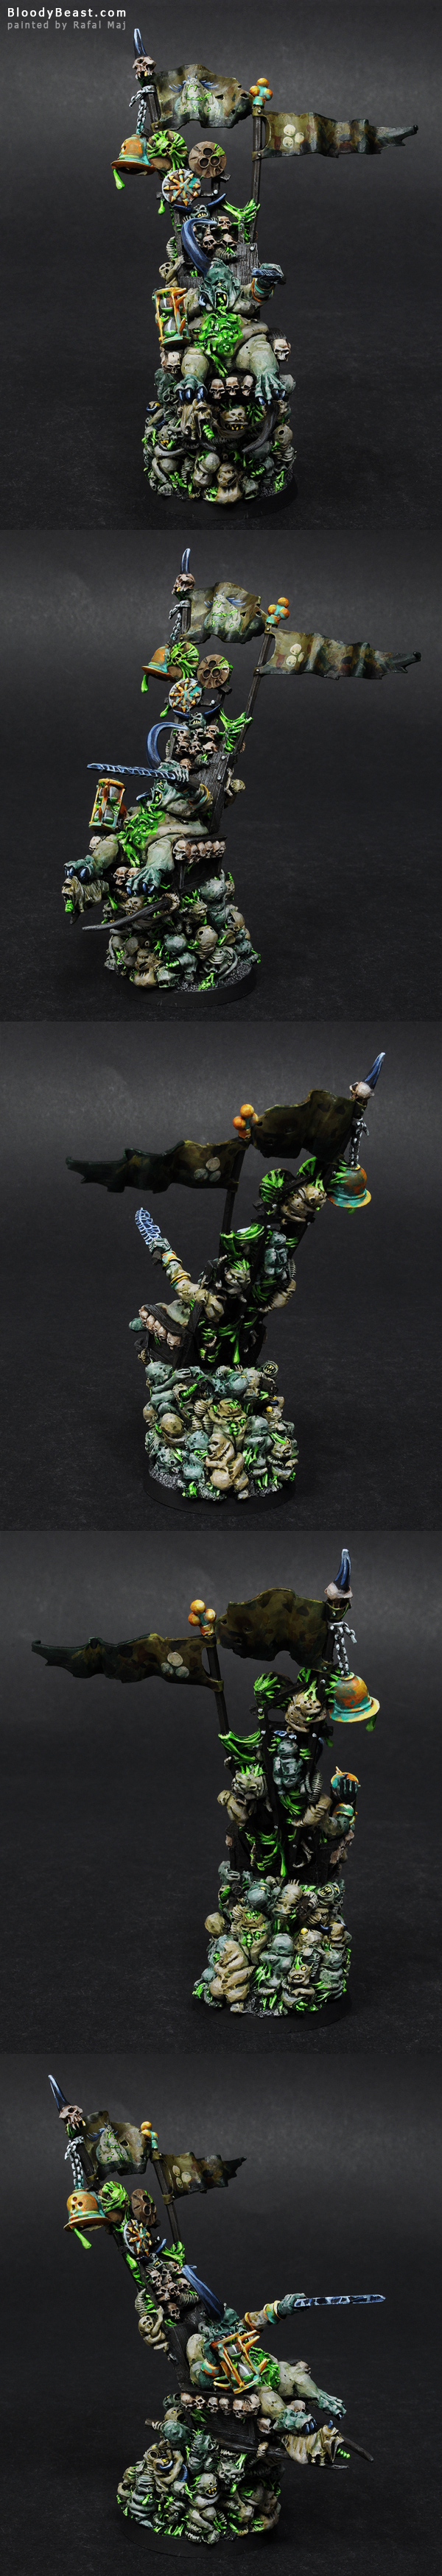 Epidemius the Tallyman of Nurgle painted by Rafal Maj (BloodyBeast.com)